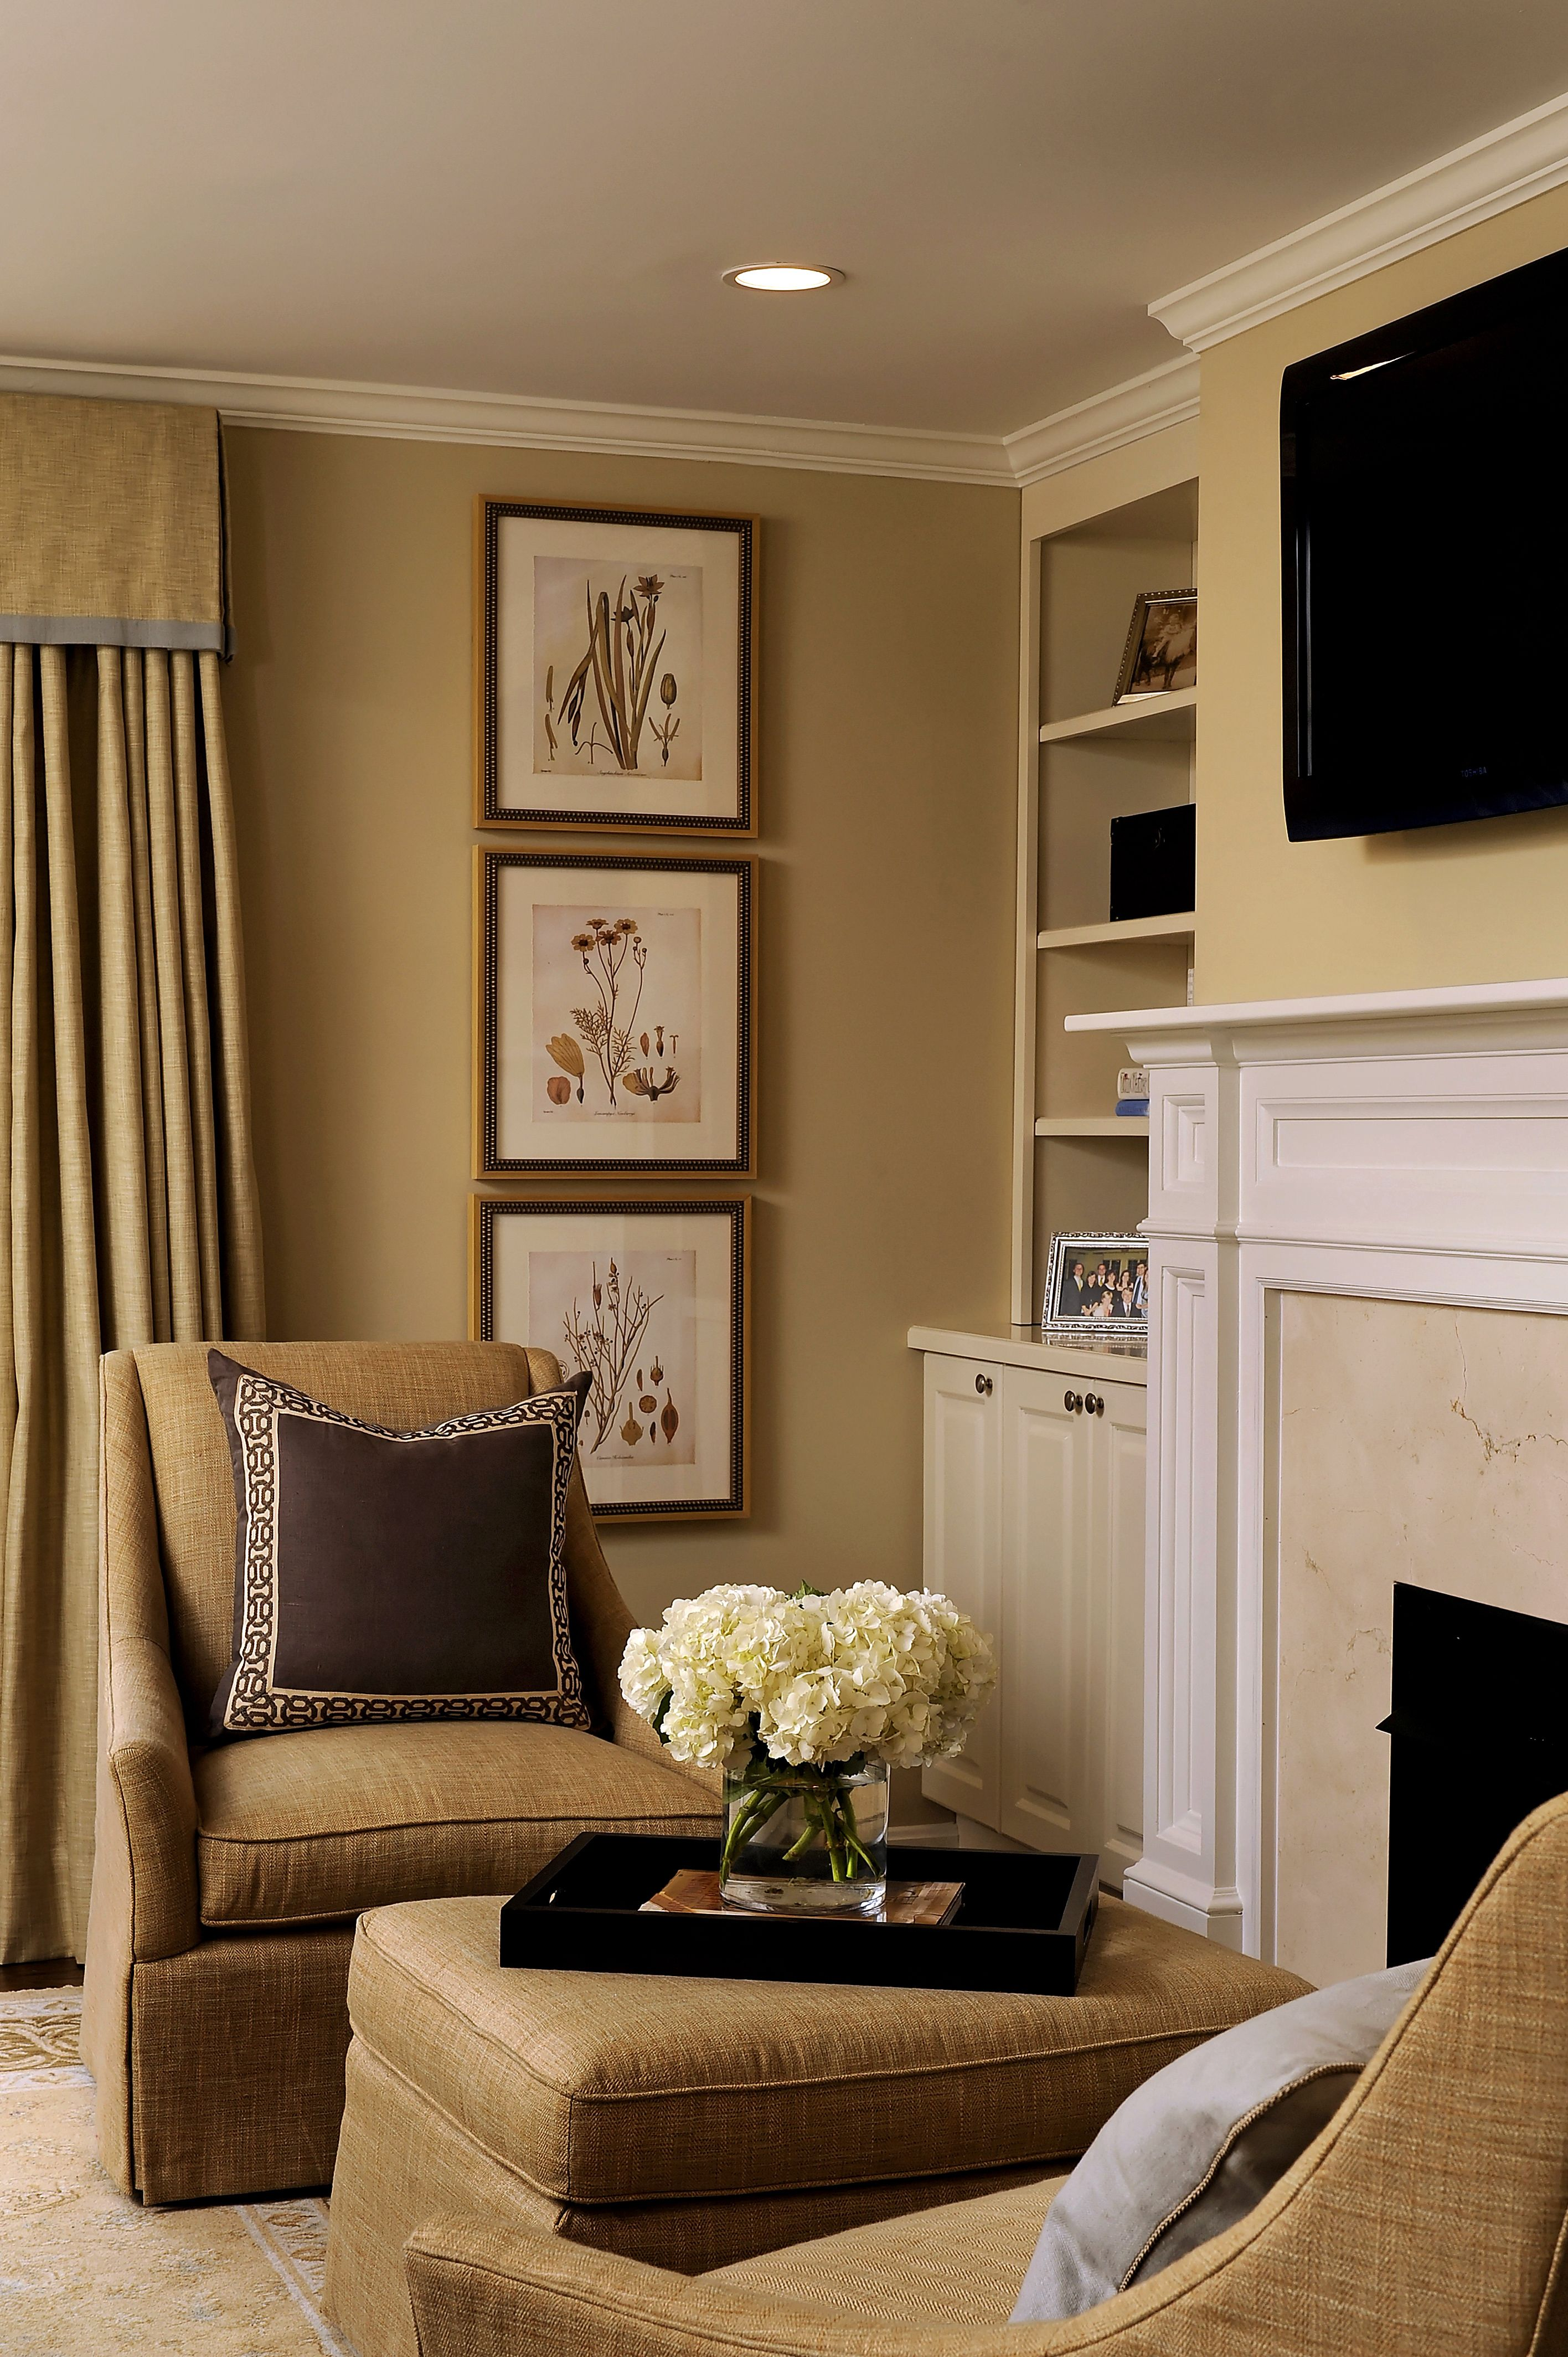 Pin by telma barroso on paredes gua pinterest neutral color palettes chic living room and for Neutral color palette for living room